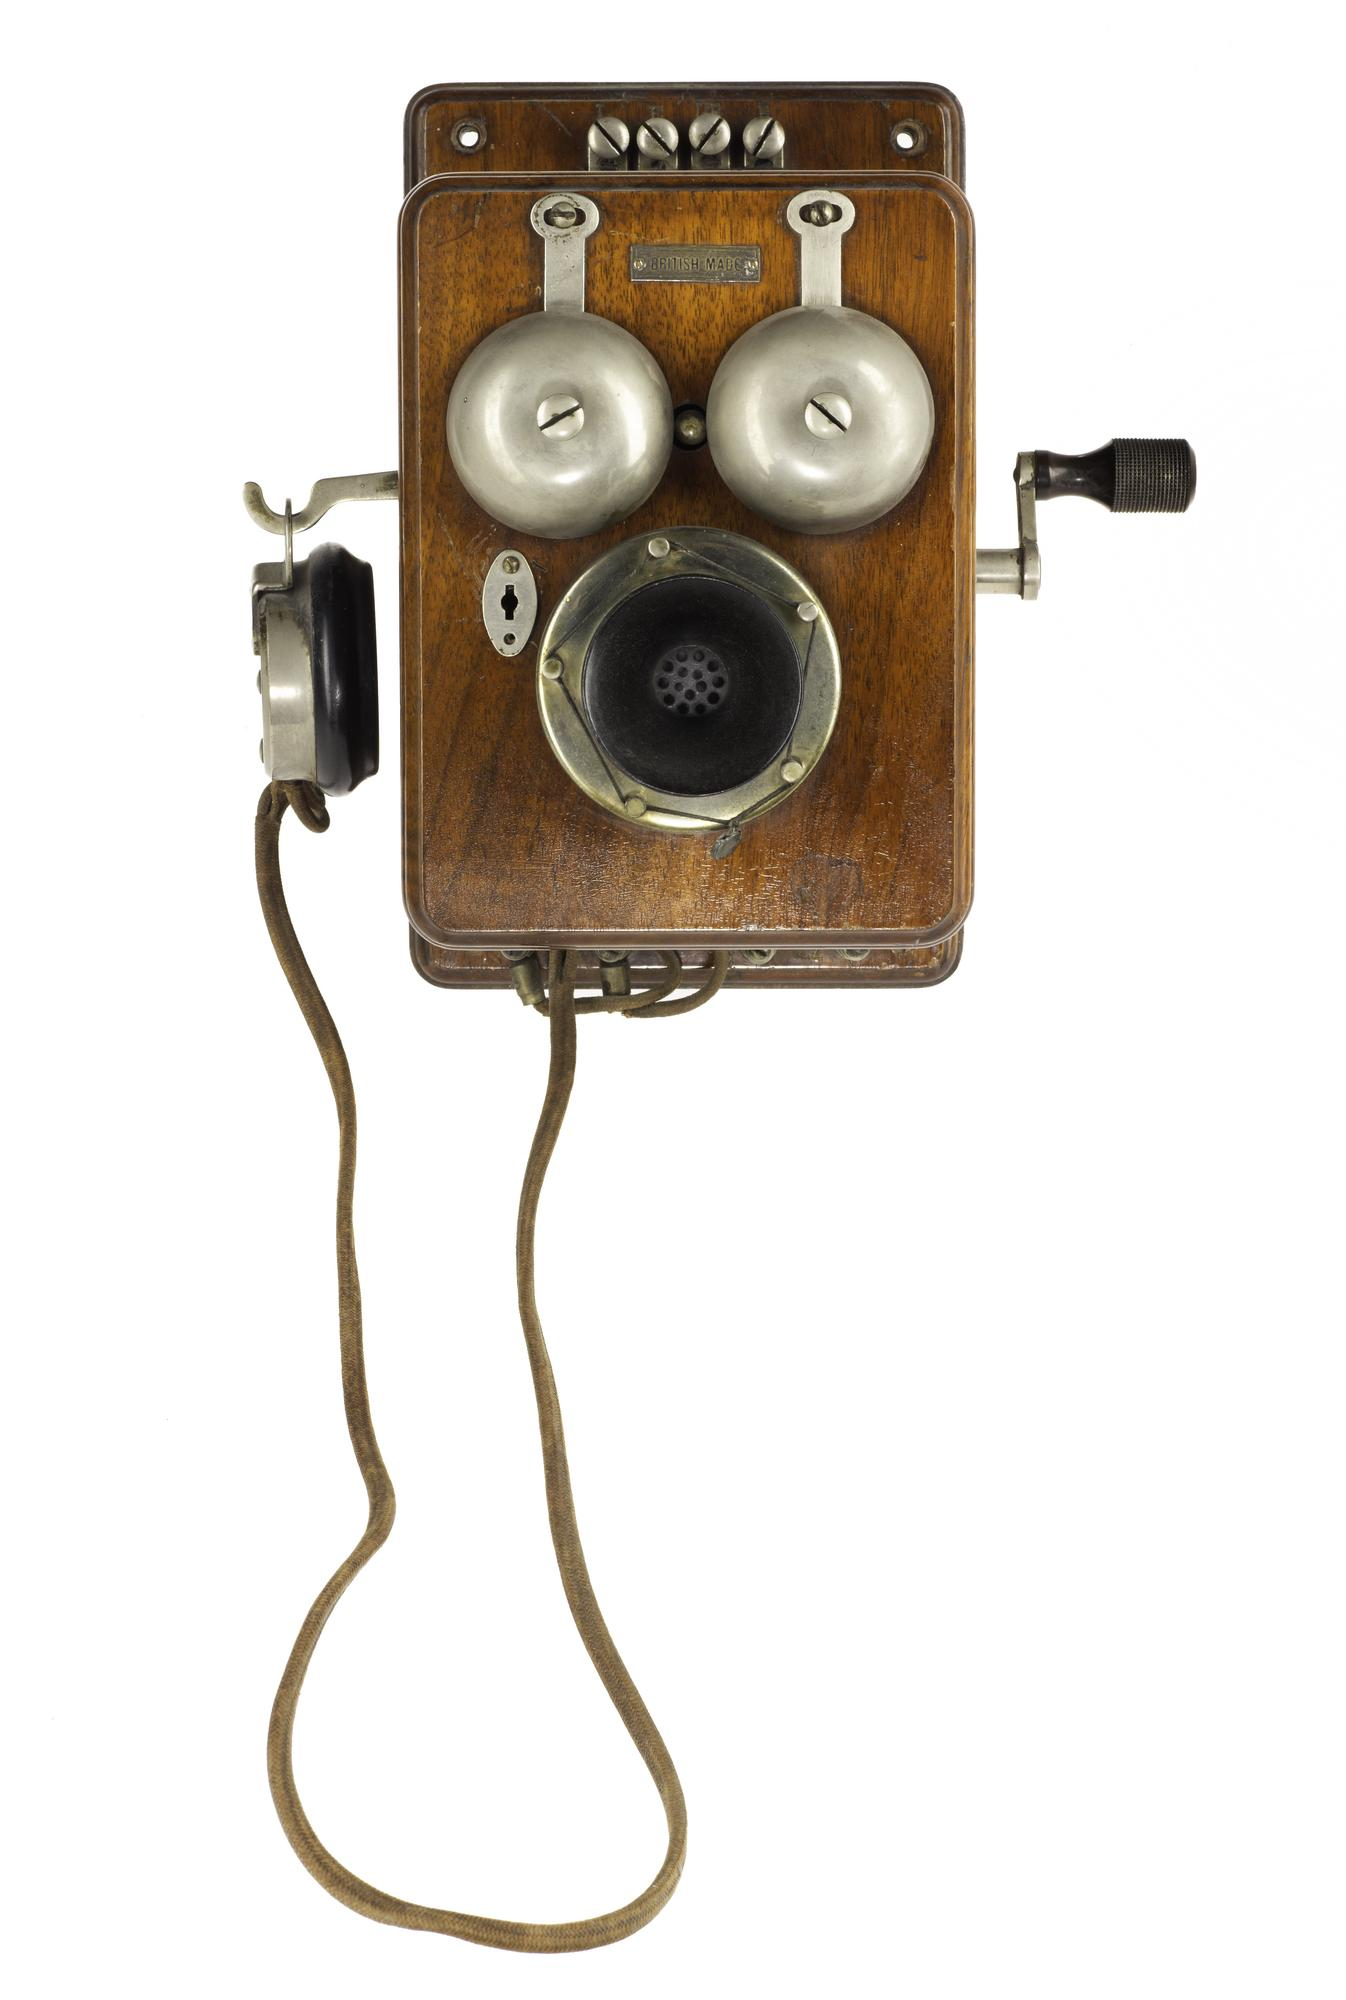 Telephone wall mounting, with a hand-generator, made by Sterling of London, 1905 - 1910